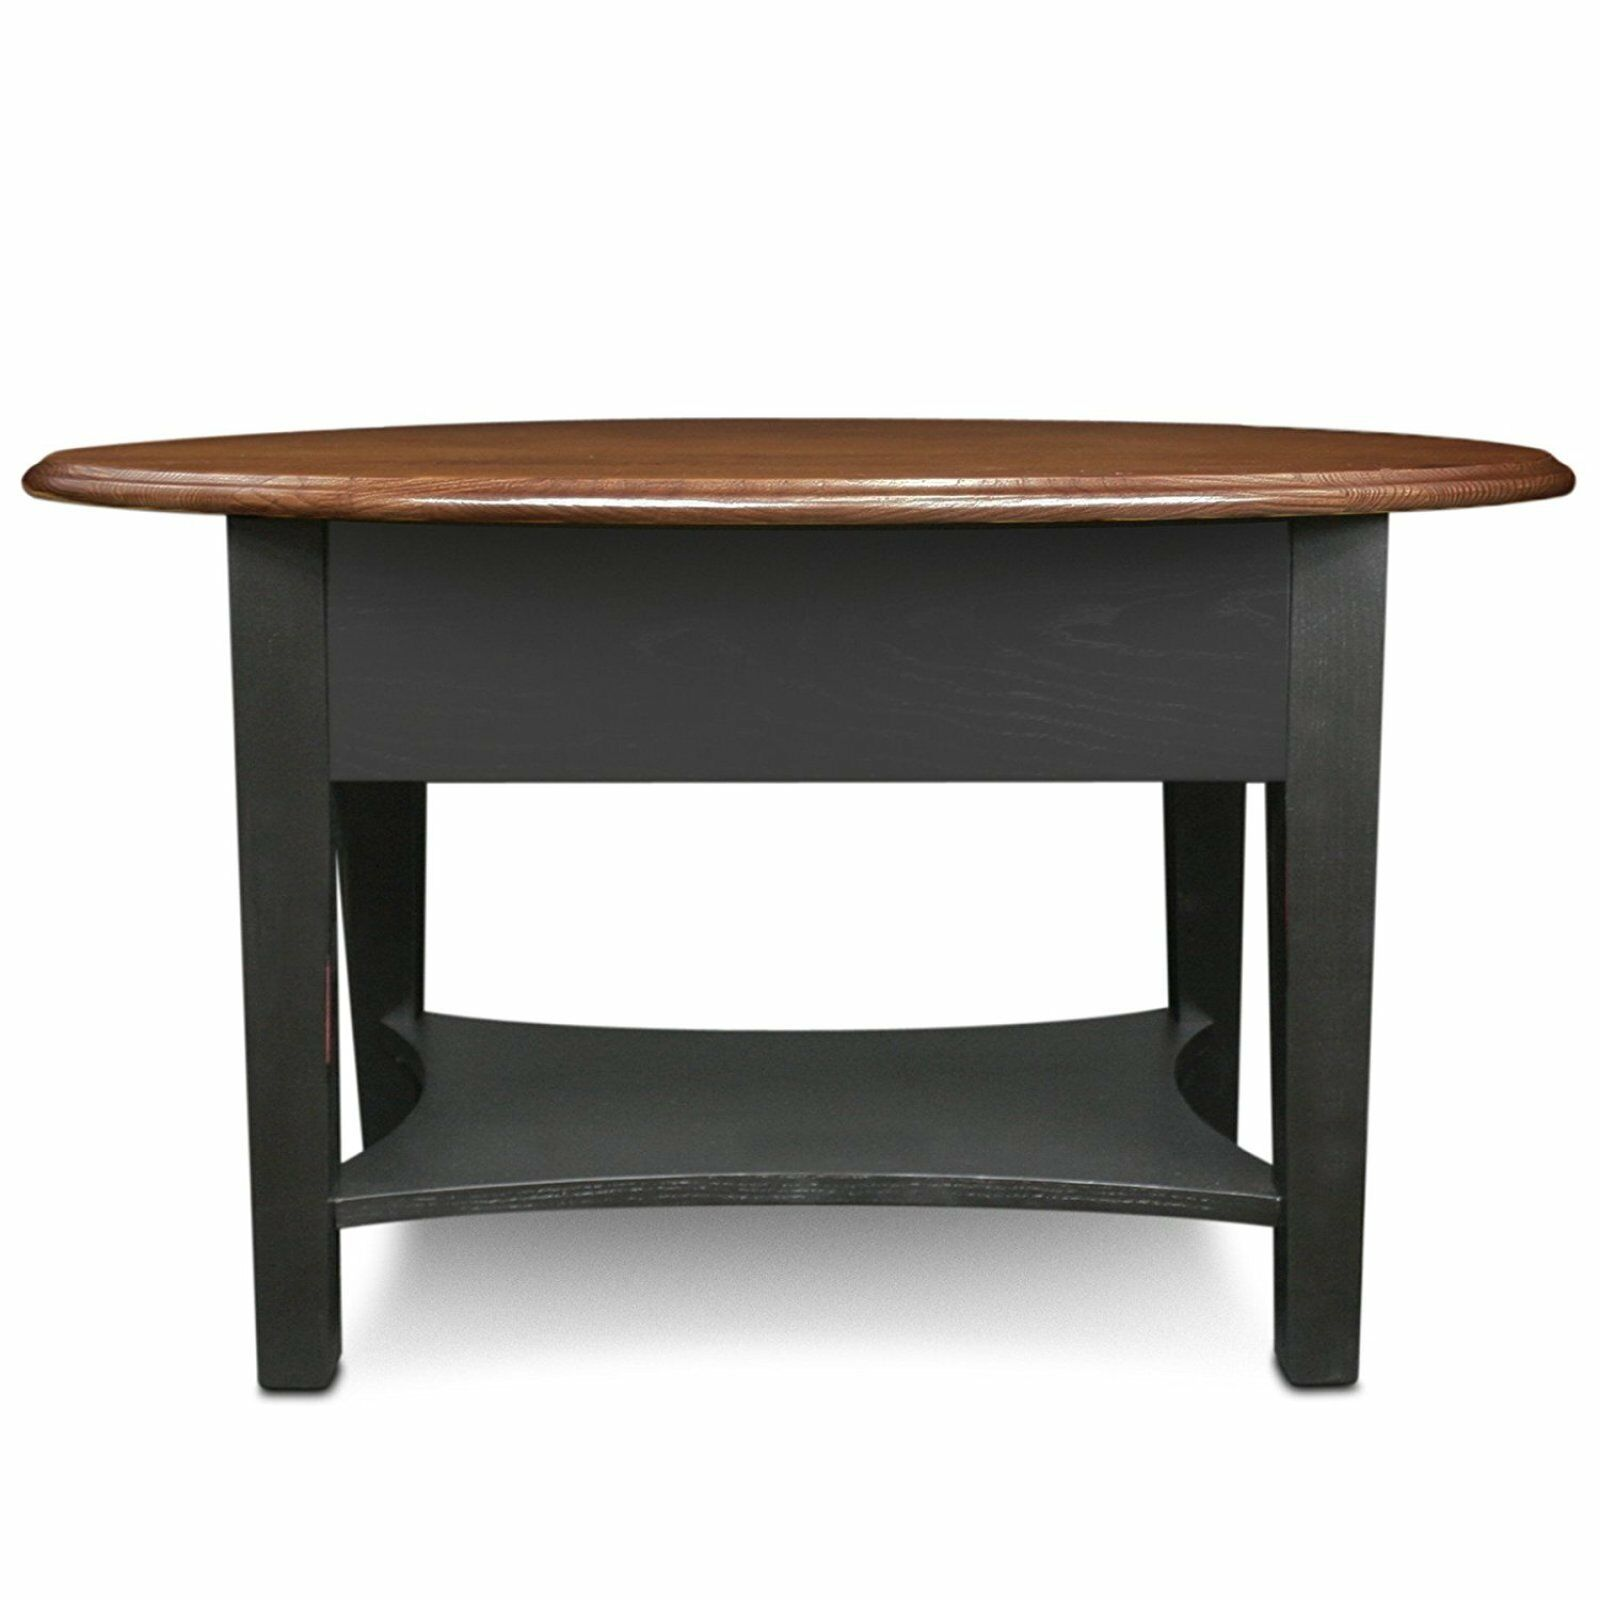 Oval Small Spaces Coffee Table Medium Oak Large Solid Wood Storage